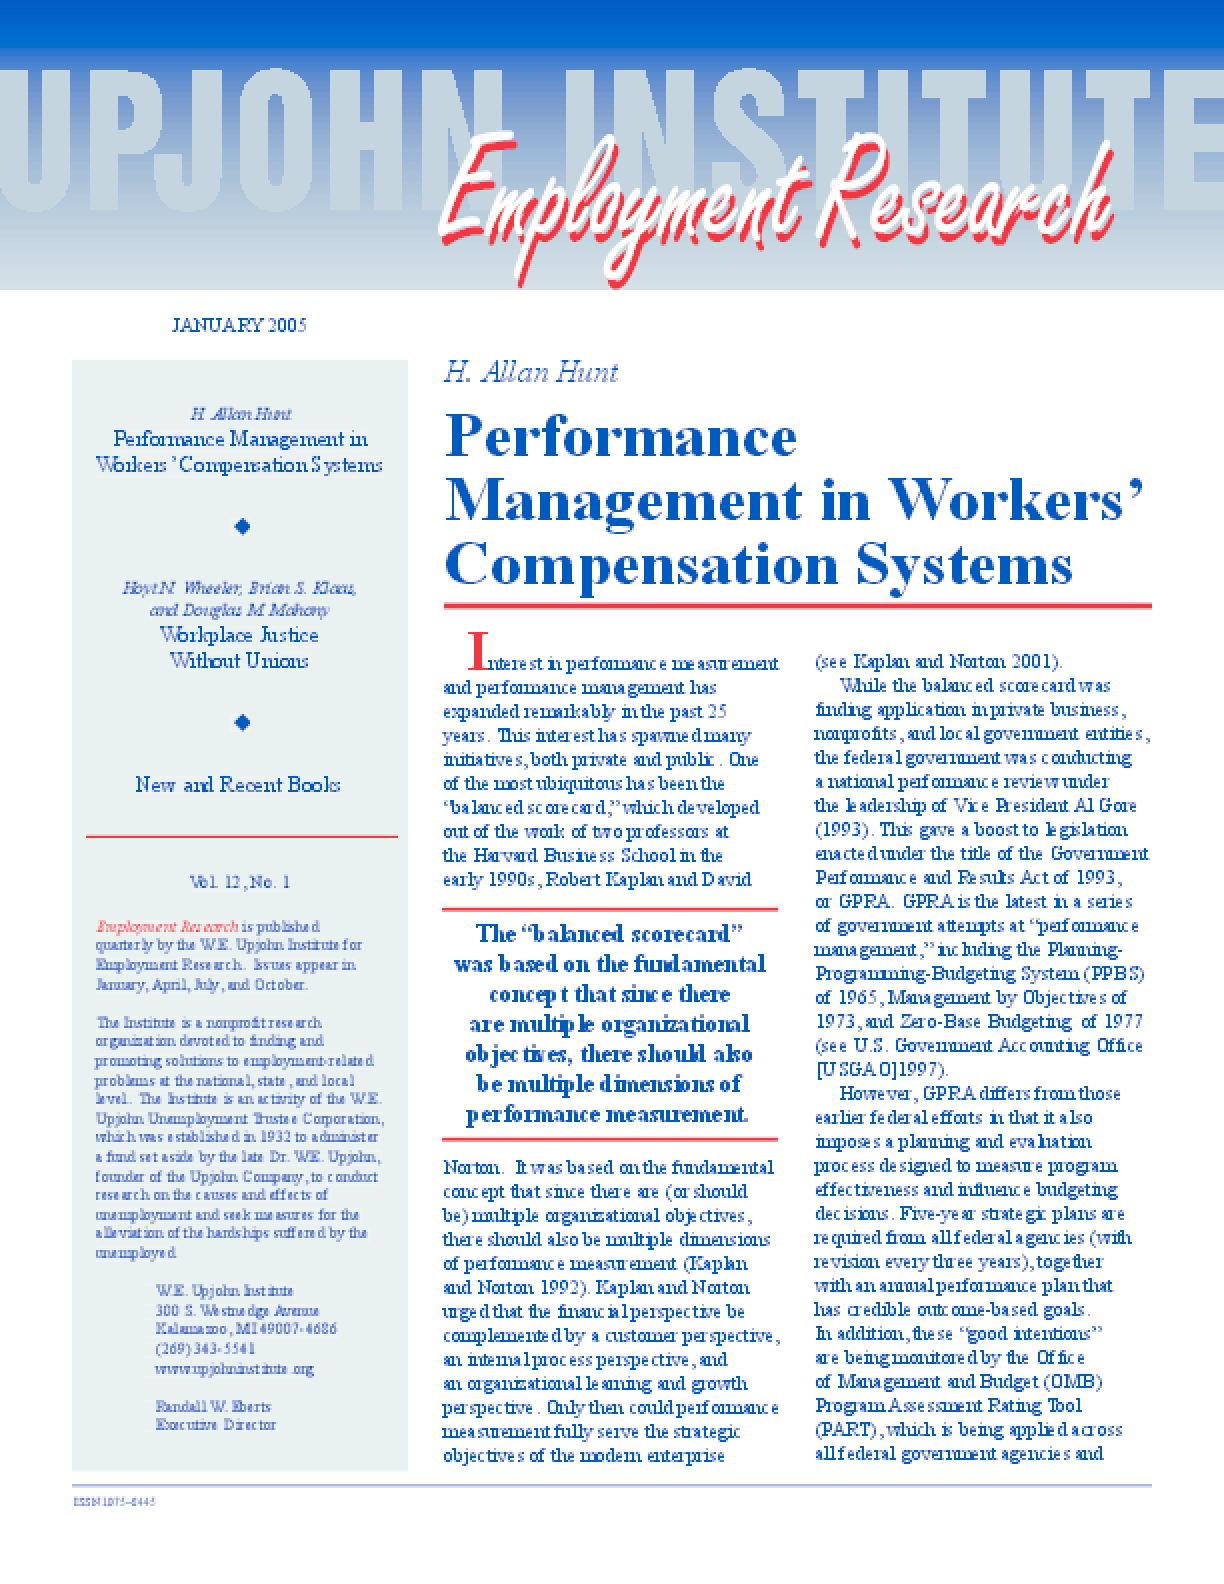 Performance Management in Workers' Compensation Systems